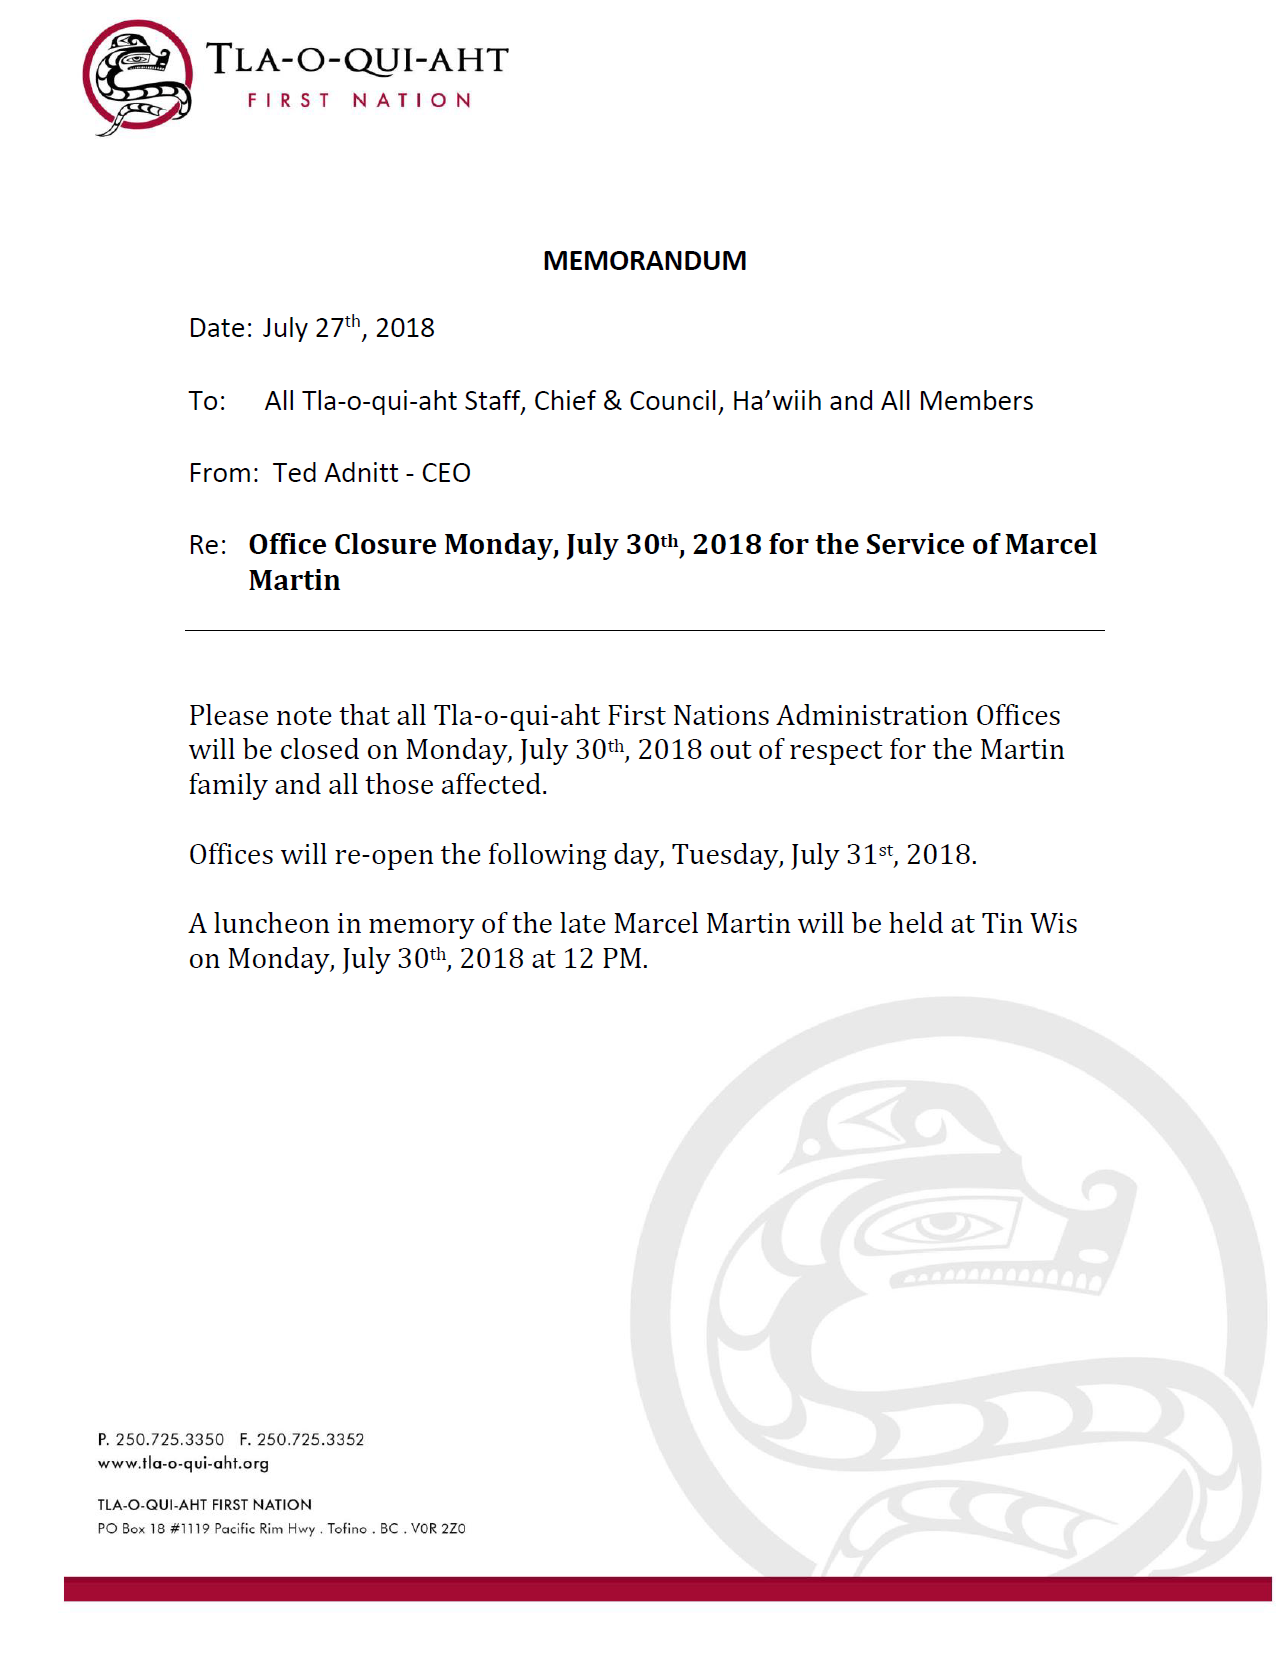 Memo re Office Closure July 30 and Luncheon for Marcel Martin.png